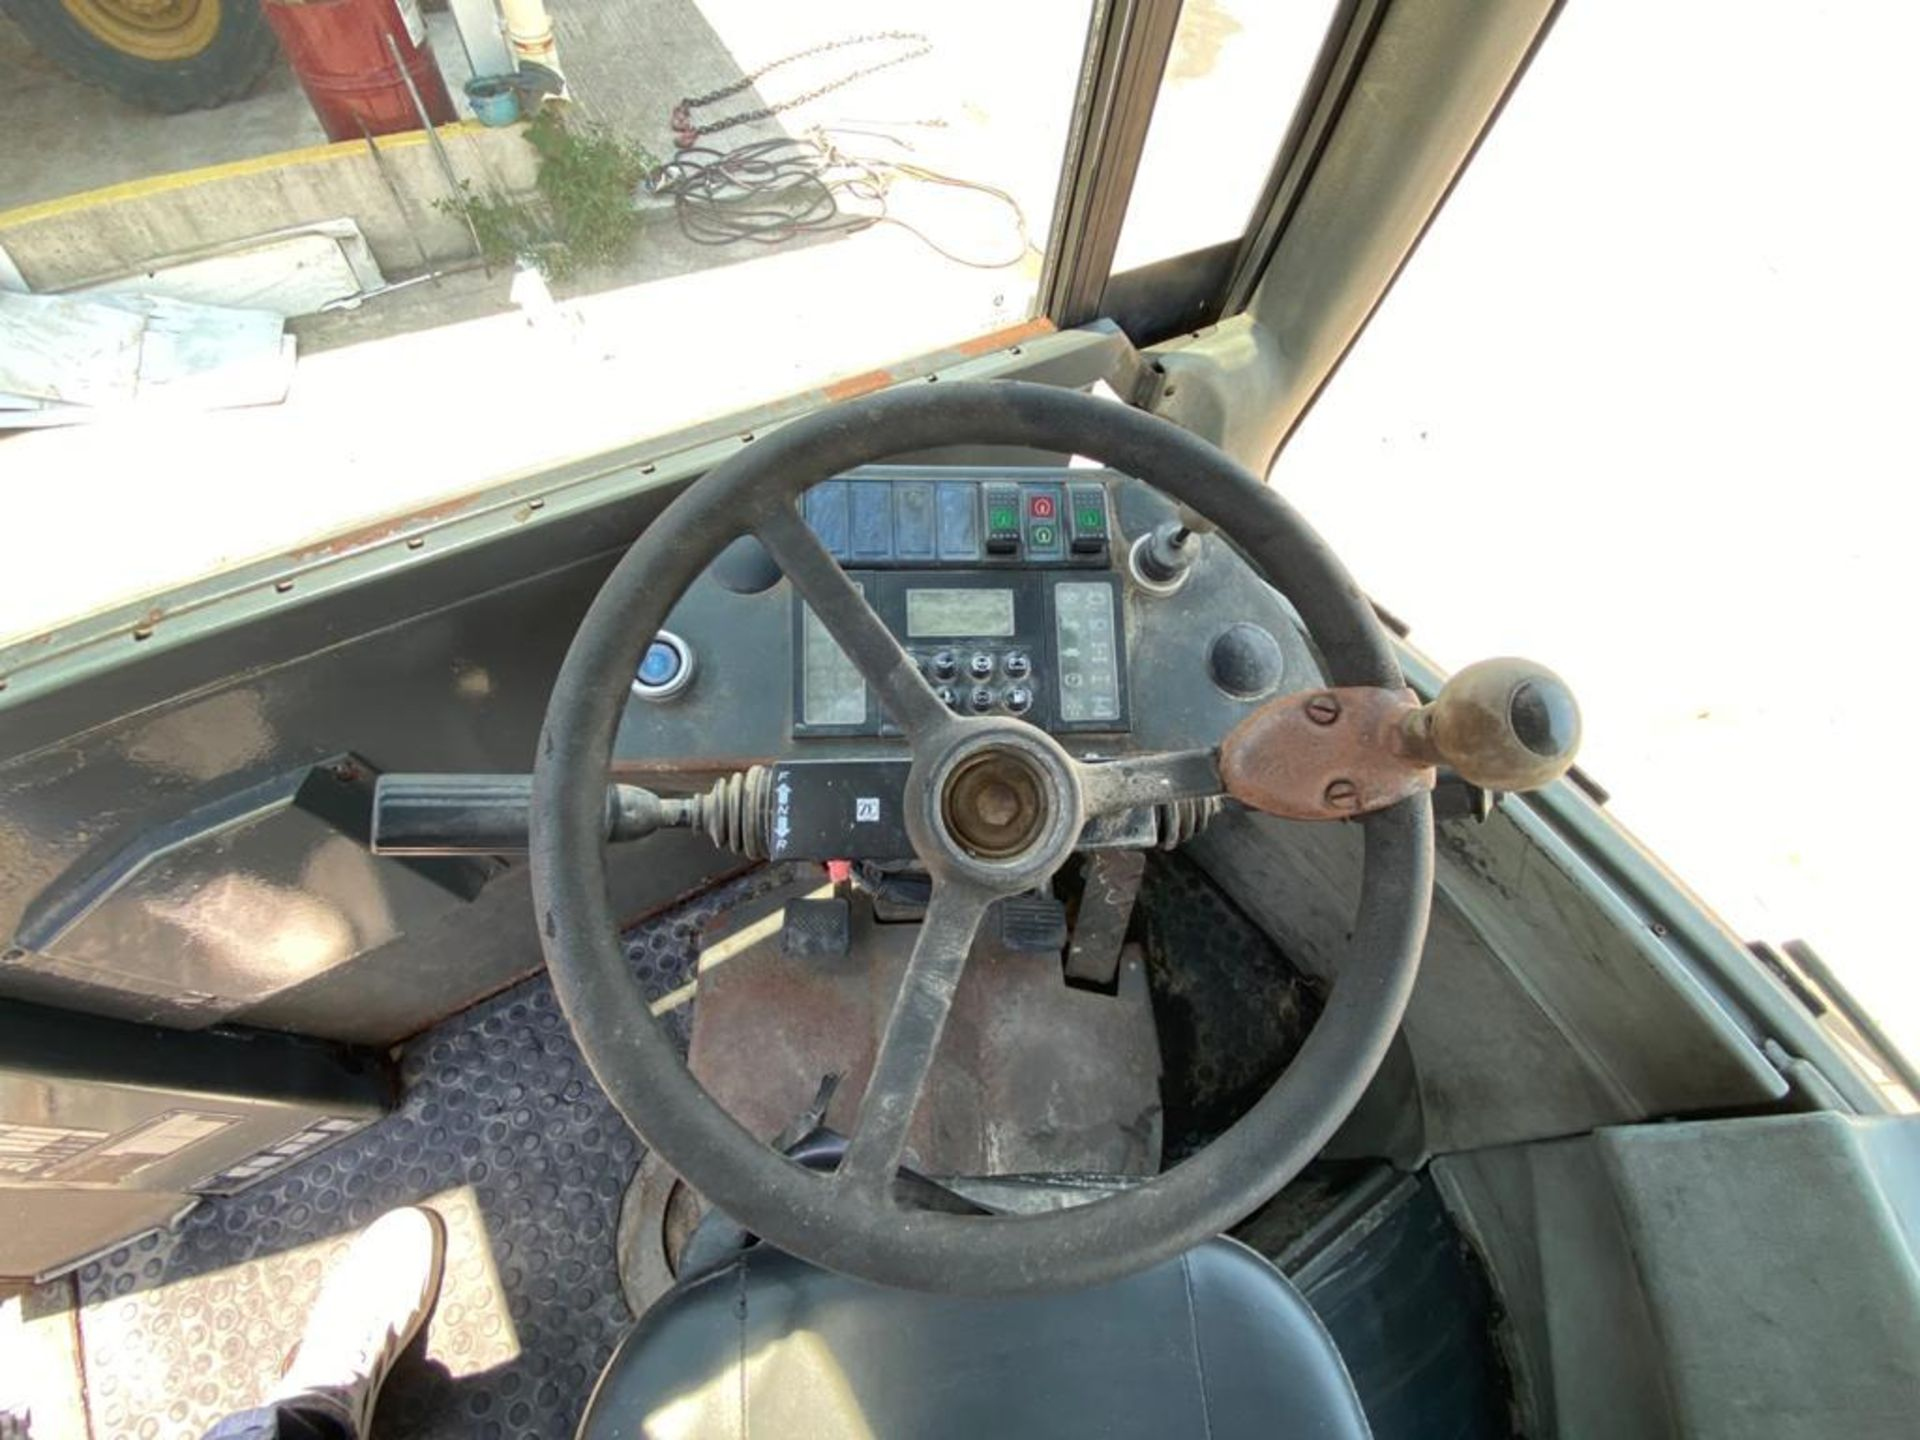 Terberg Capacity 2002 Terminal Tractor, automatic transmission - Image 22 of 57